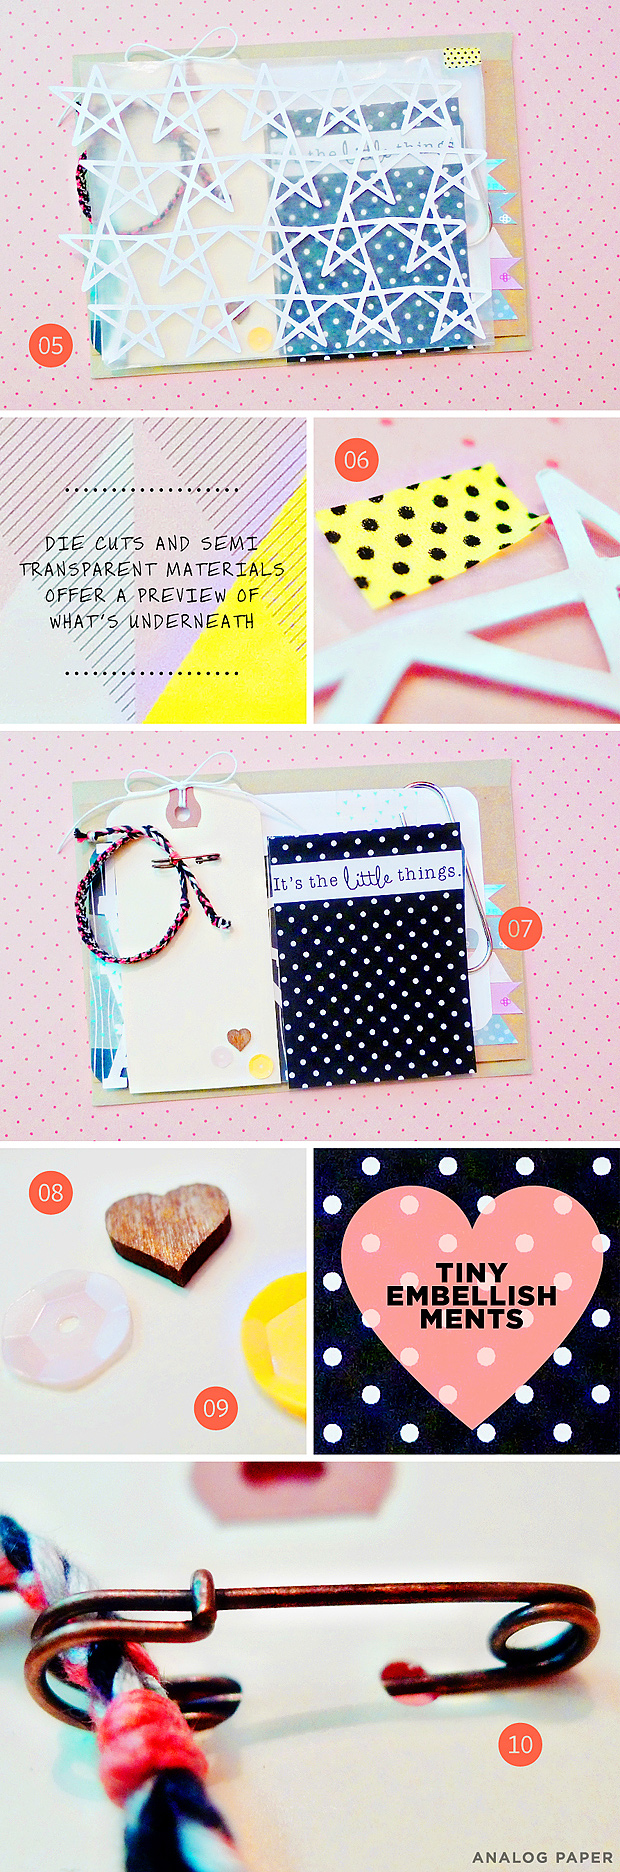 DIY // Snail Mail // Create a Mini Craft Kit